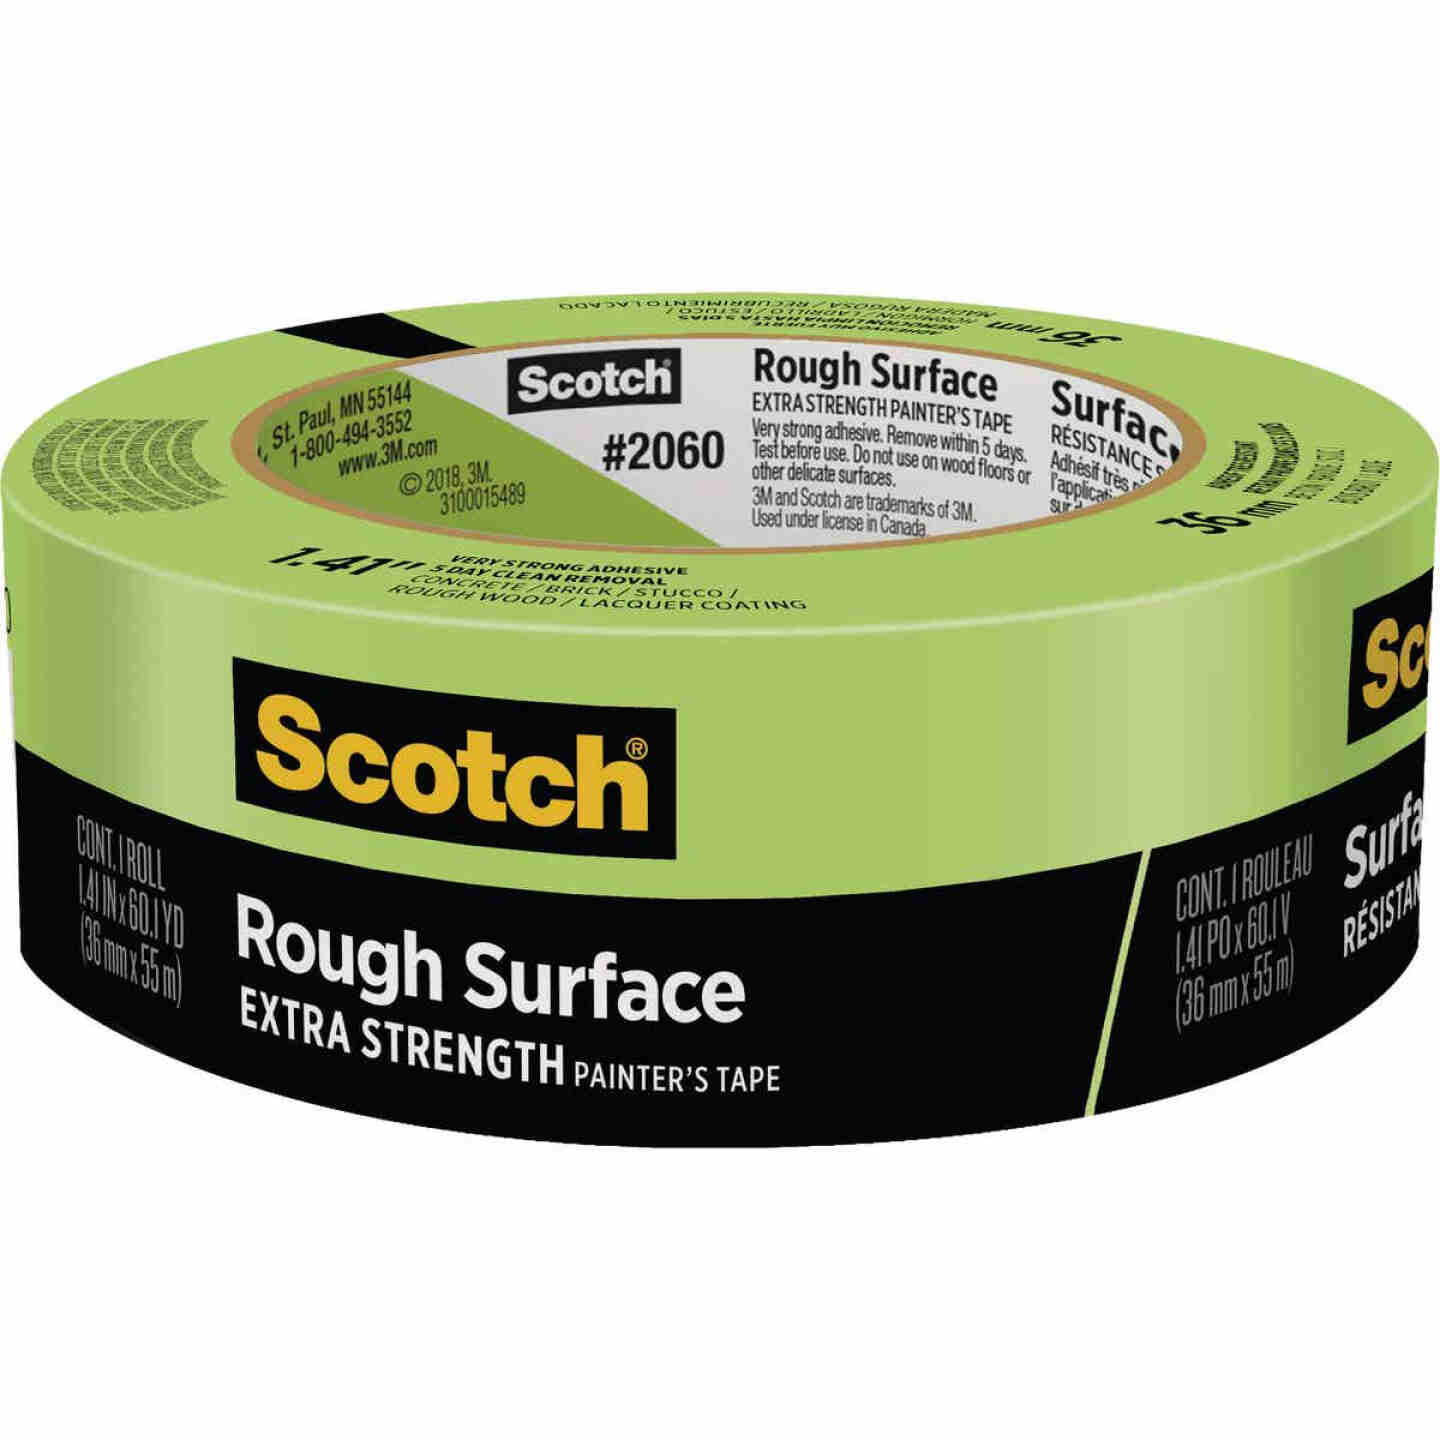 3M Scotch 1.41 In. x 60.1 Yd. Rough Surface Painter's Tape Image 1